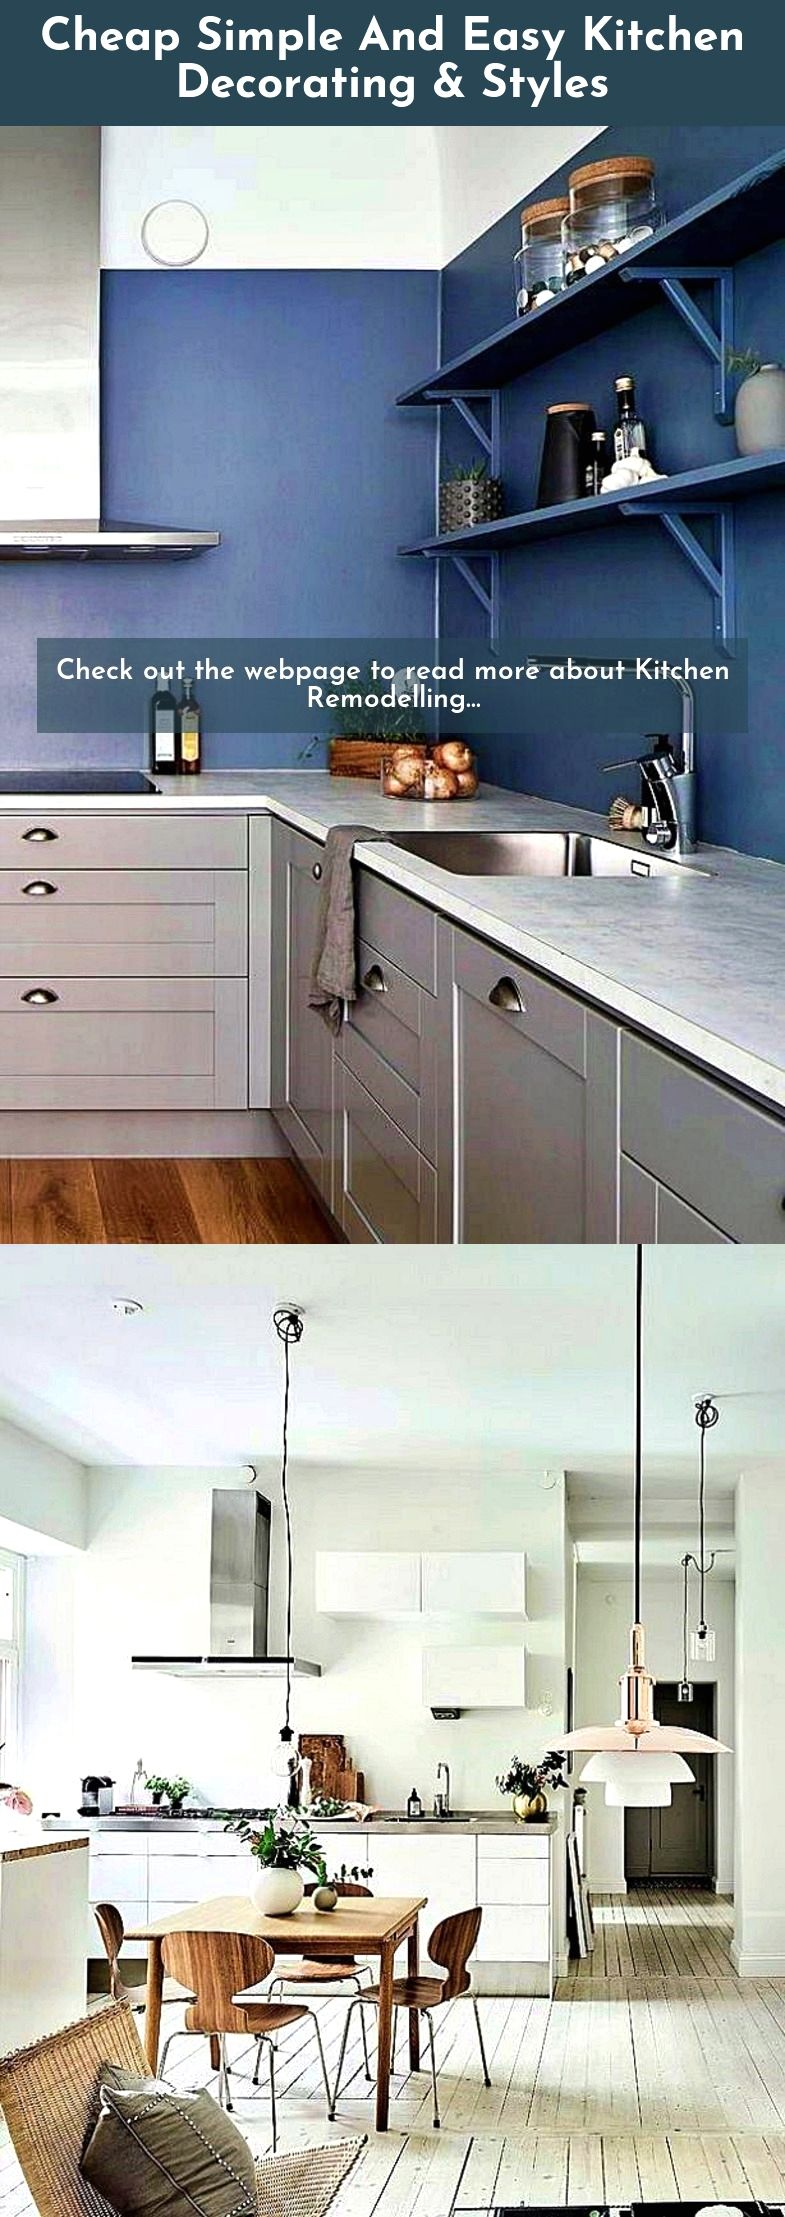 5 Mistakes People Make When Painting Kitchen Cabinets Painting Kitchen Cabinets Kitchen Redo Diy Kitchen